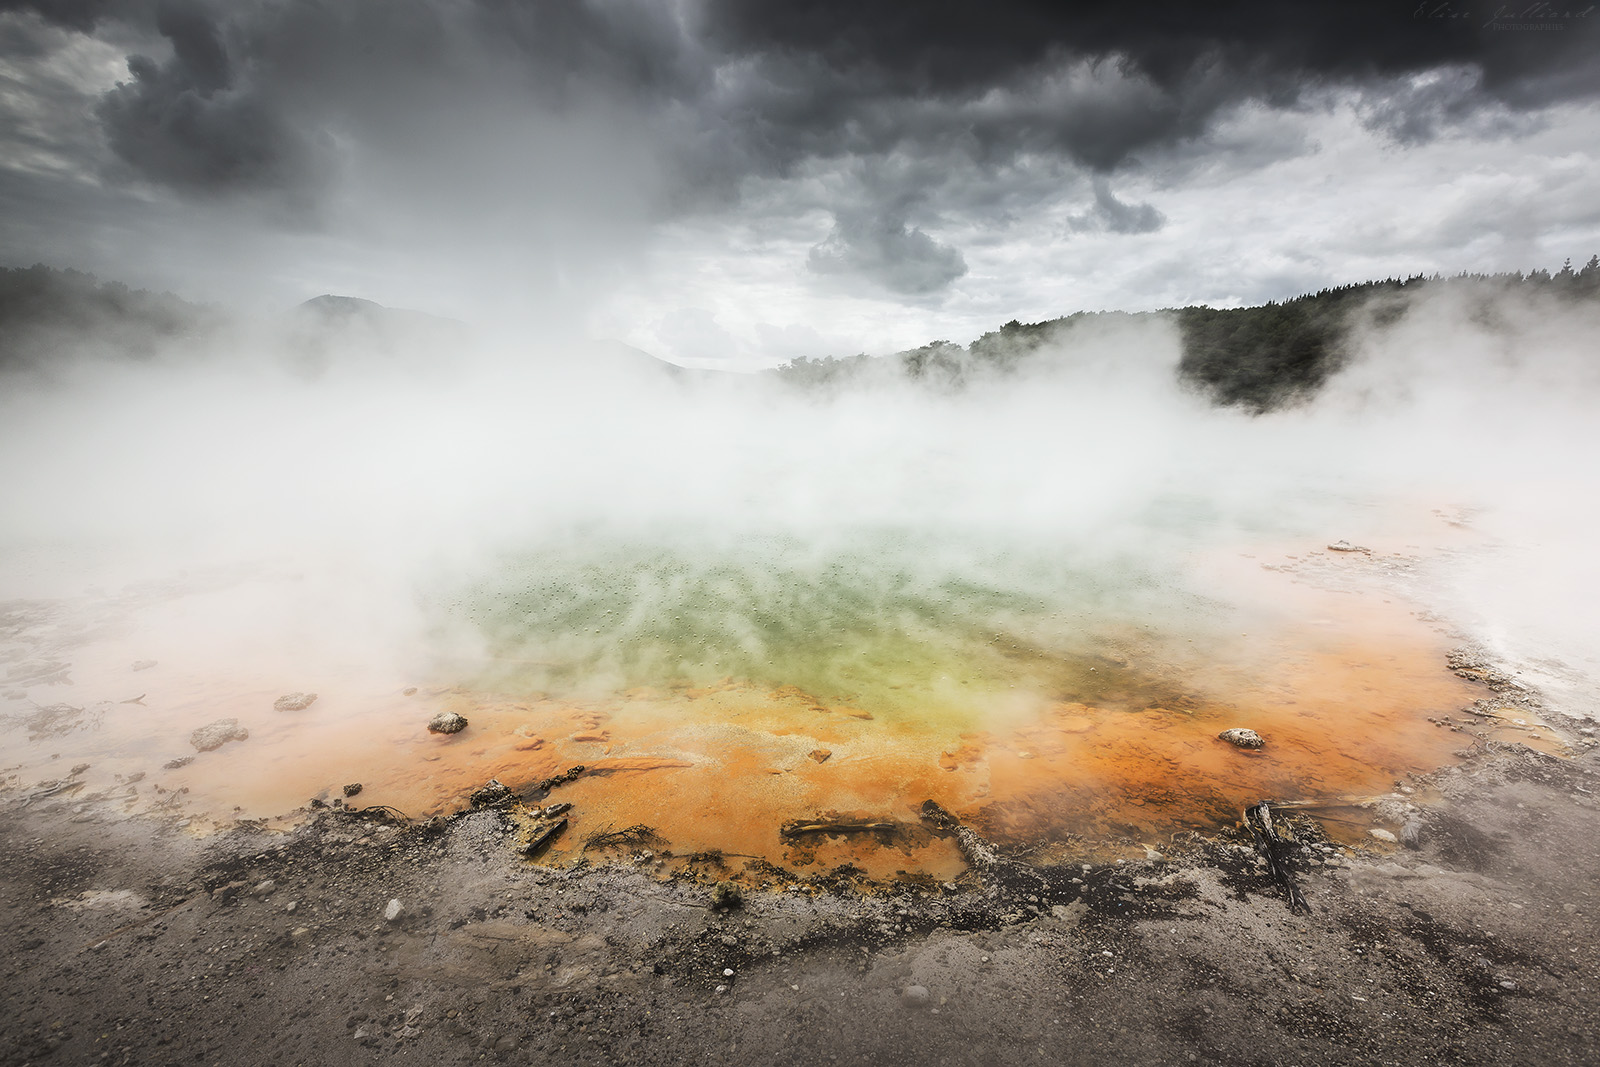 wai-o-tapu-rorotua-new-zealand-nouvelle-zelande-north-island-ile-nord-champagne-pool-waikato-taupo-volcanic-volcan-volcano-zone-geothermal-travel-voyage-Aotearoa